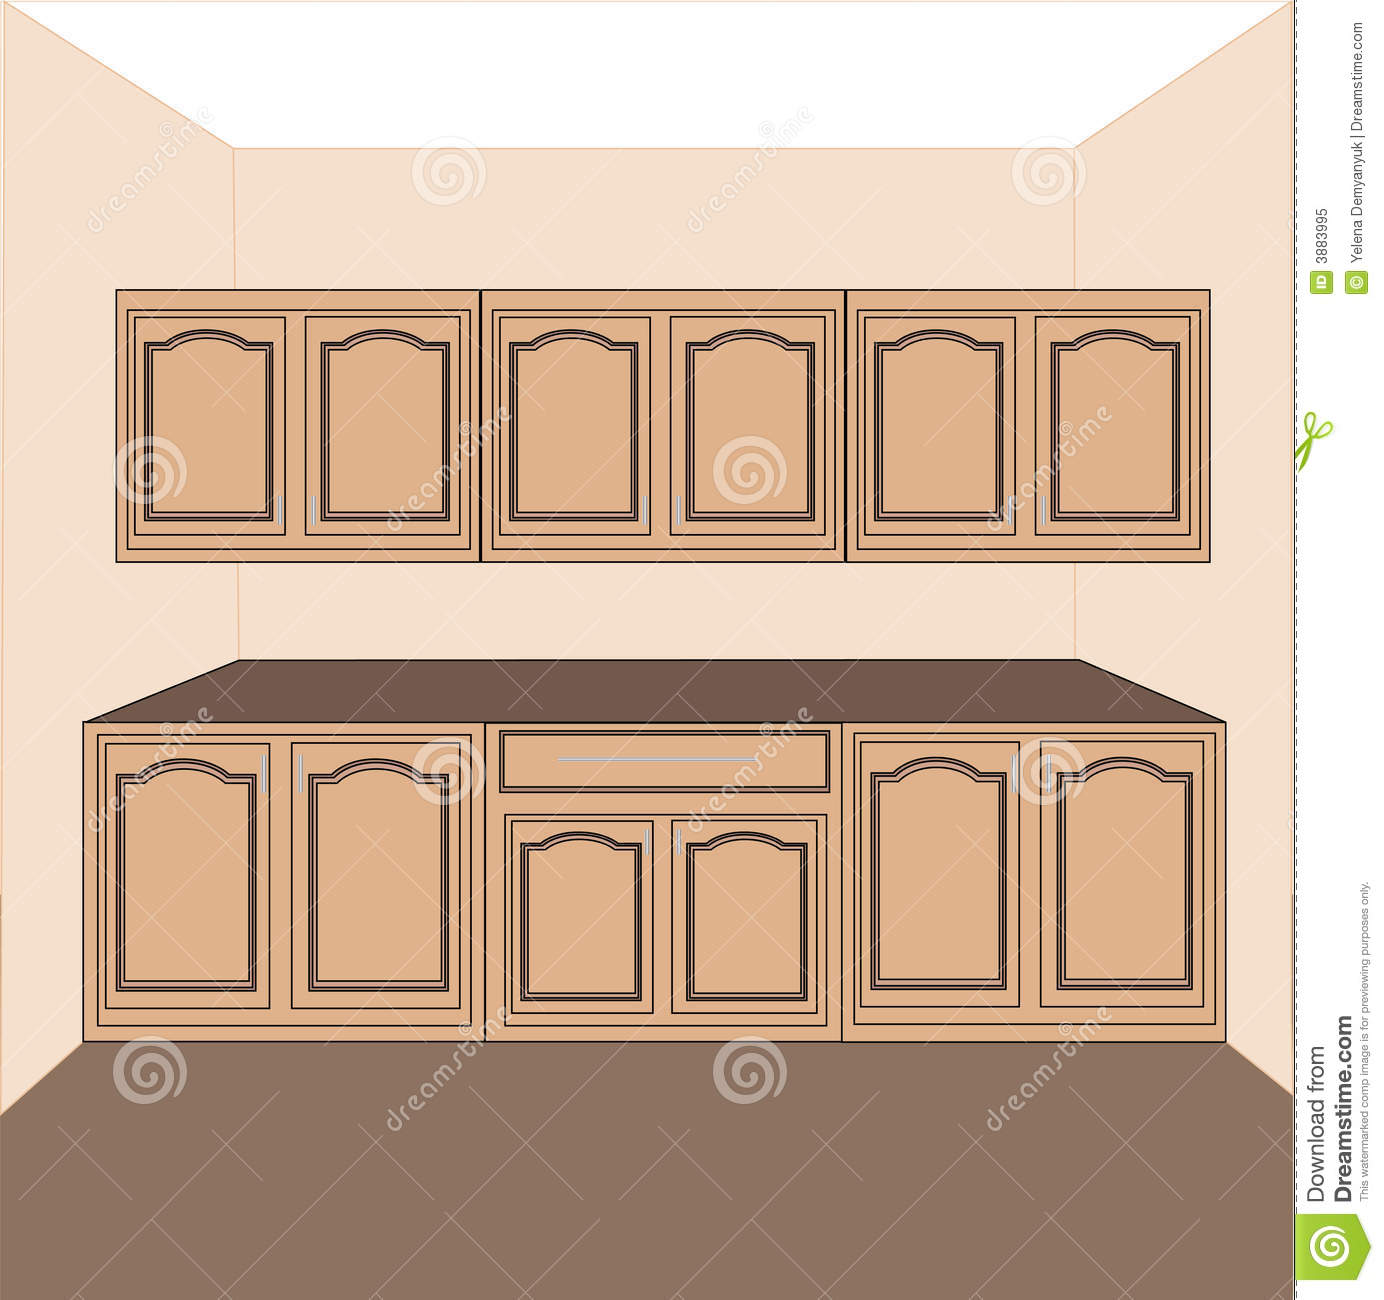 kitchen laundry cabinets vector royalty free stock photo image 3883995. Black Bedroom Furniture Sets. Home Design Ideas